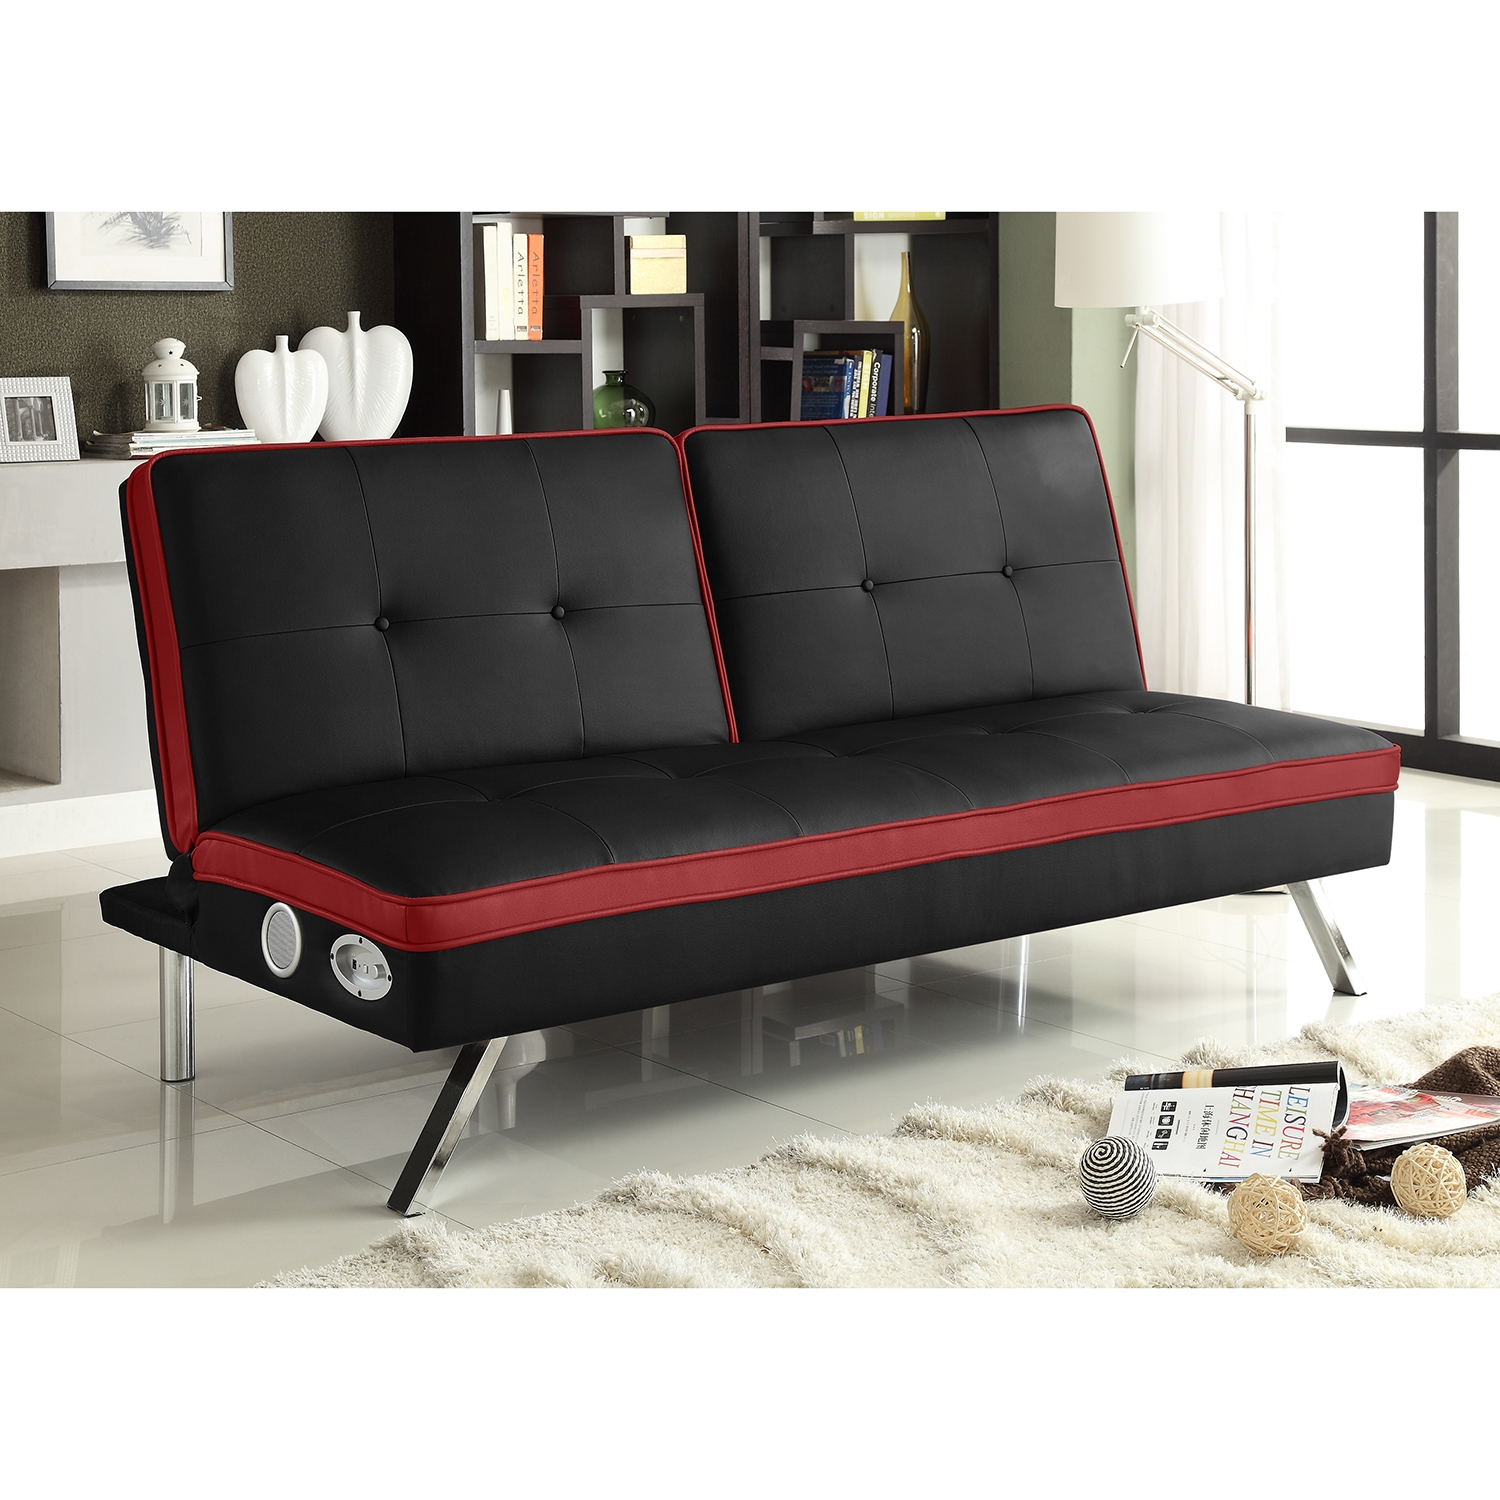 Image of: New Convertible Futon Beds IKEA